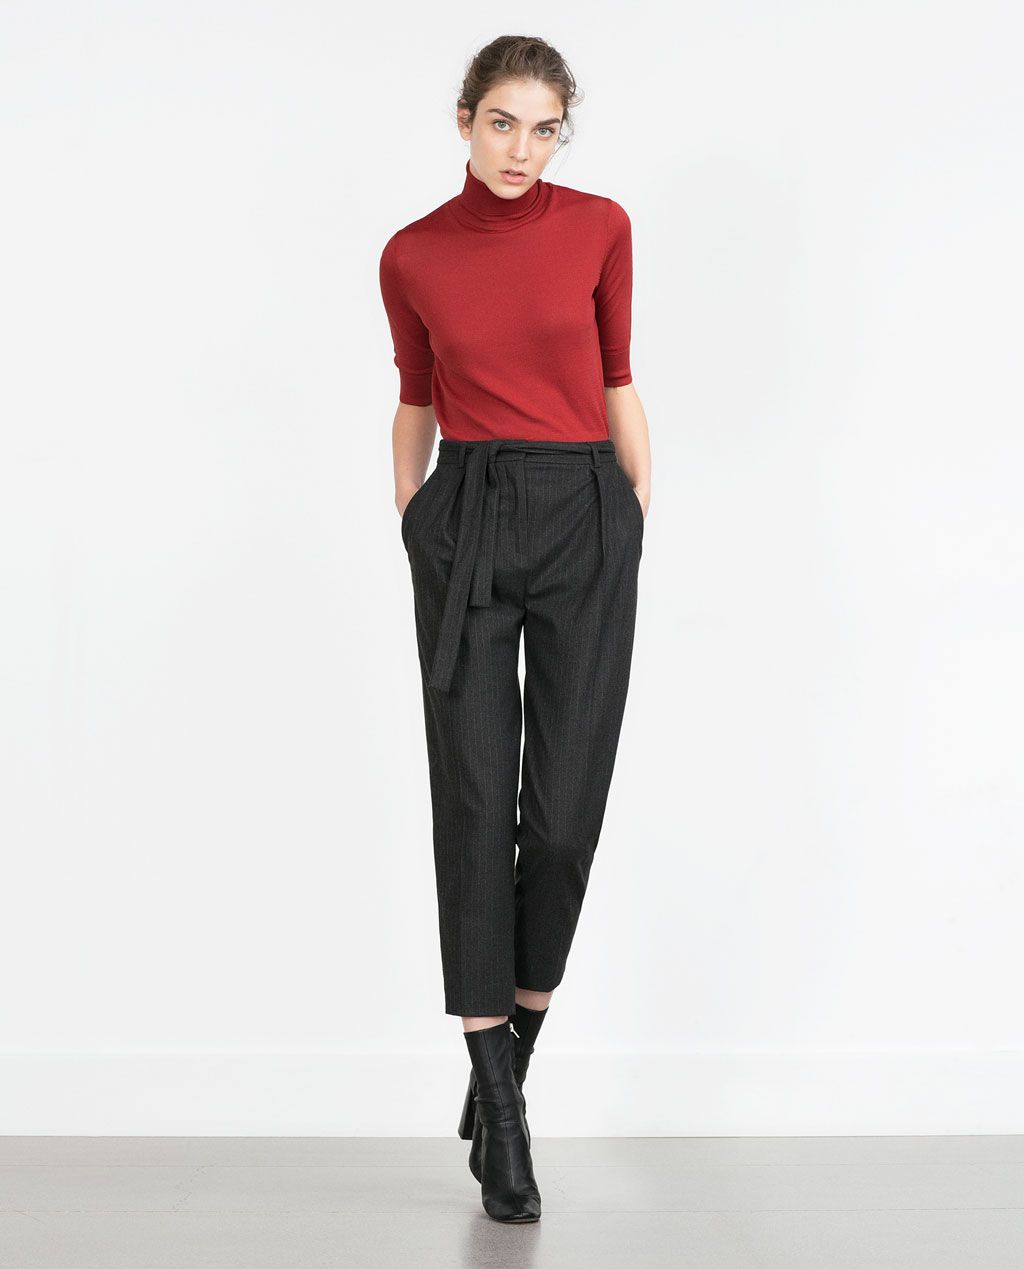 CROPPED SWEATER-View all-Woman-NEW IN | ZARA United States | What ...